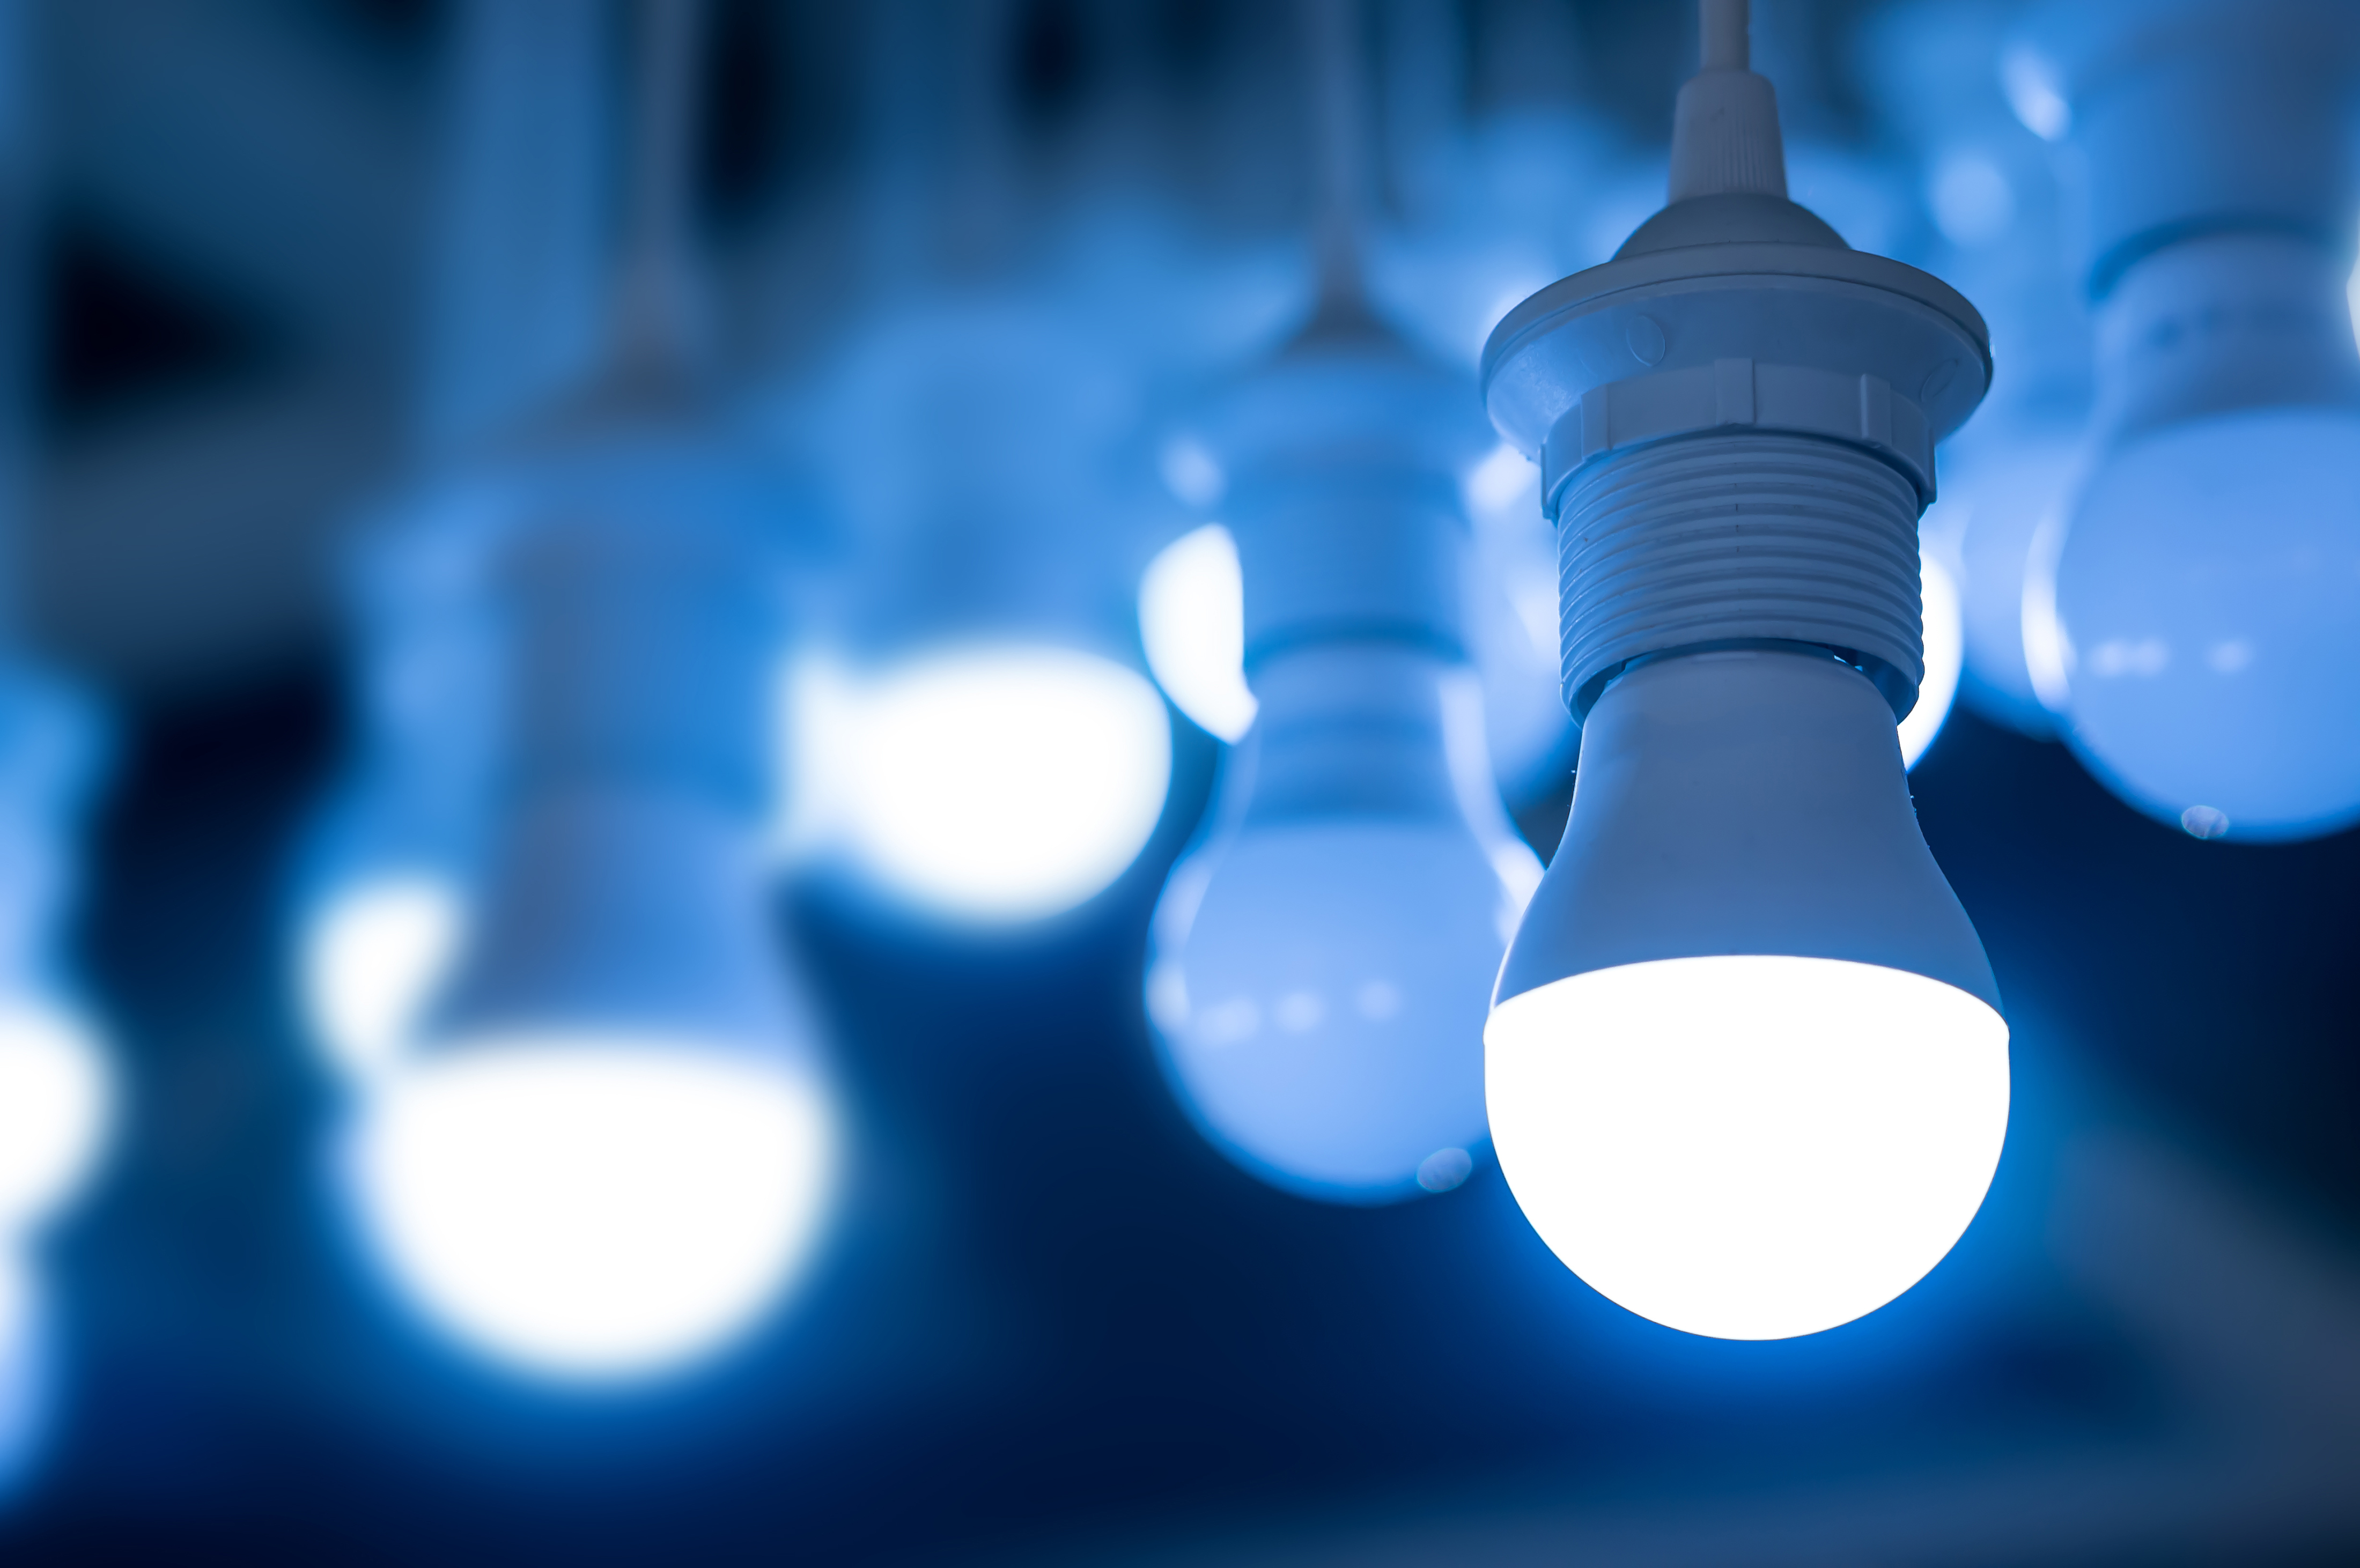 Led Lights Bad Health The Scientific Reason You Don T Like Led Bulbs And The